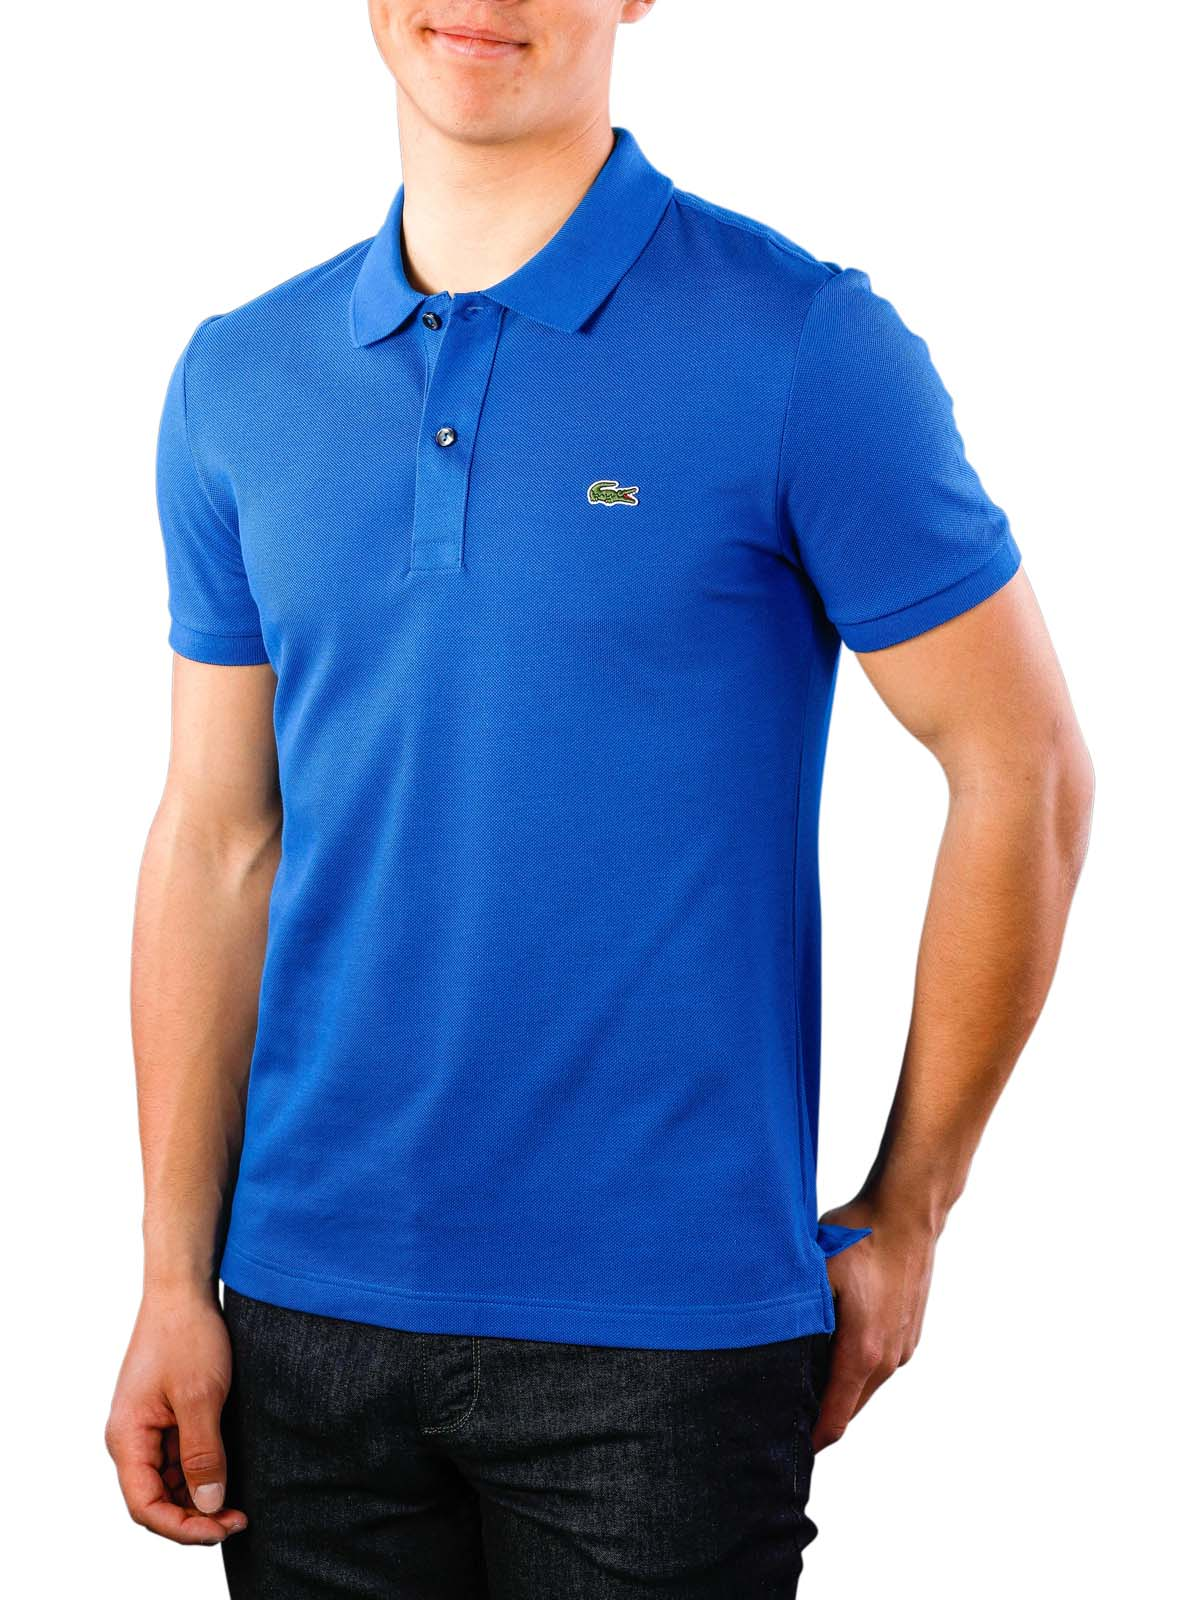 a0f1a557d225 Fast Delivery | Lacoste Polo Shirt Slim Short Sleeves ... - McJeans.ch